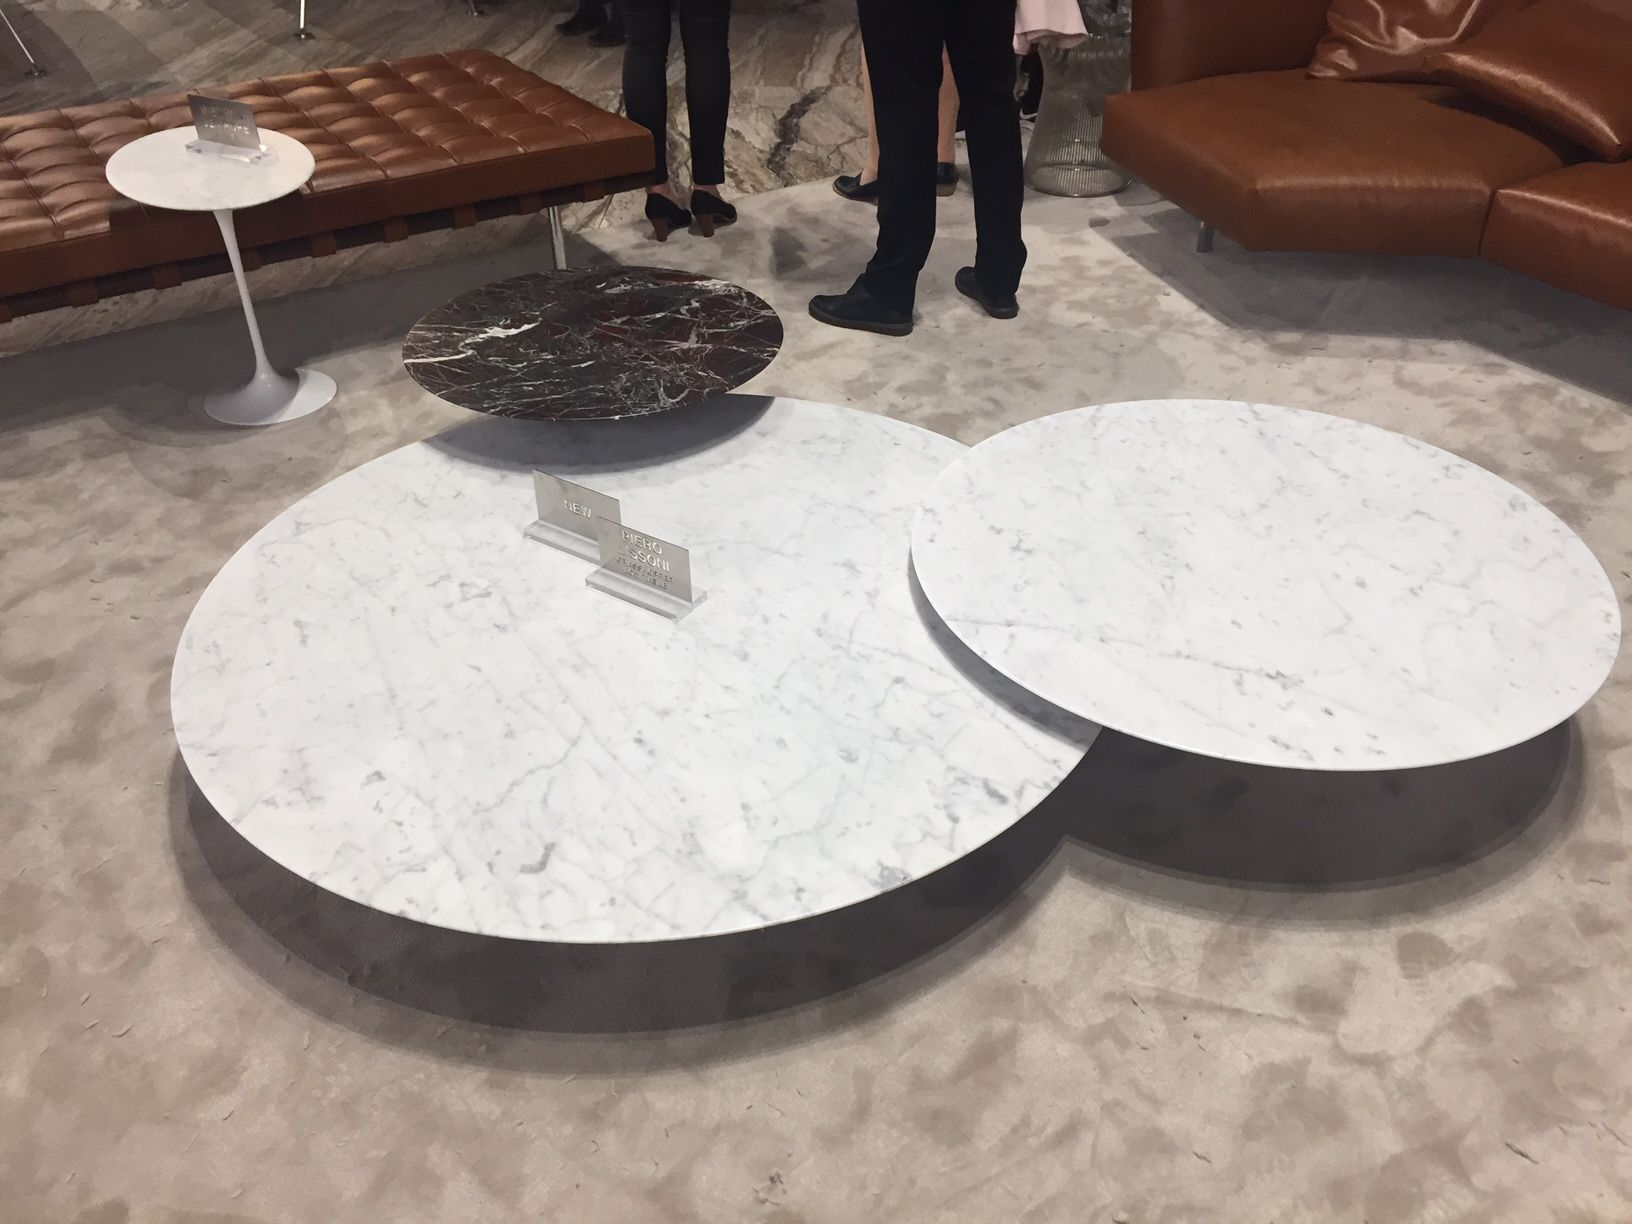 Knoll Coffee Table Cluster At Milan 2017 Knoll Coffee Table Table Inspiration Coffee Table [ 1224 x 1632 Pixel ]